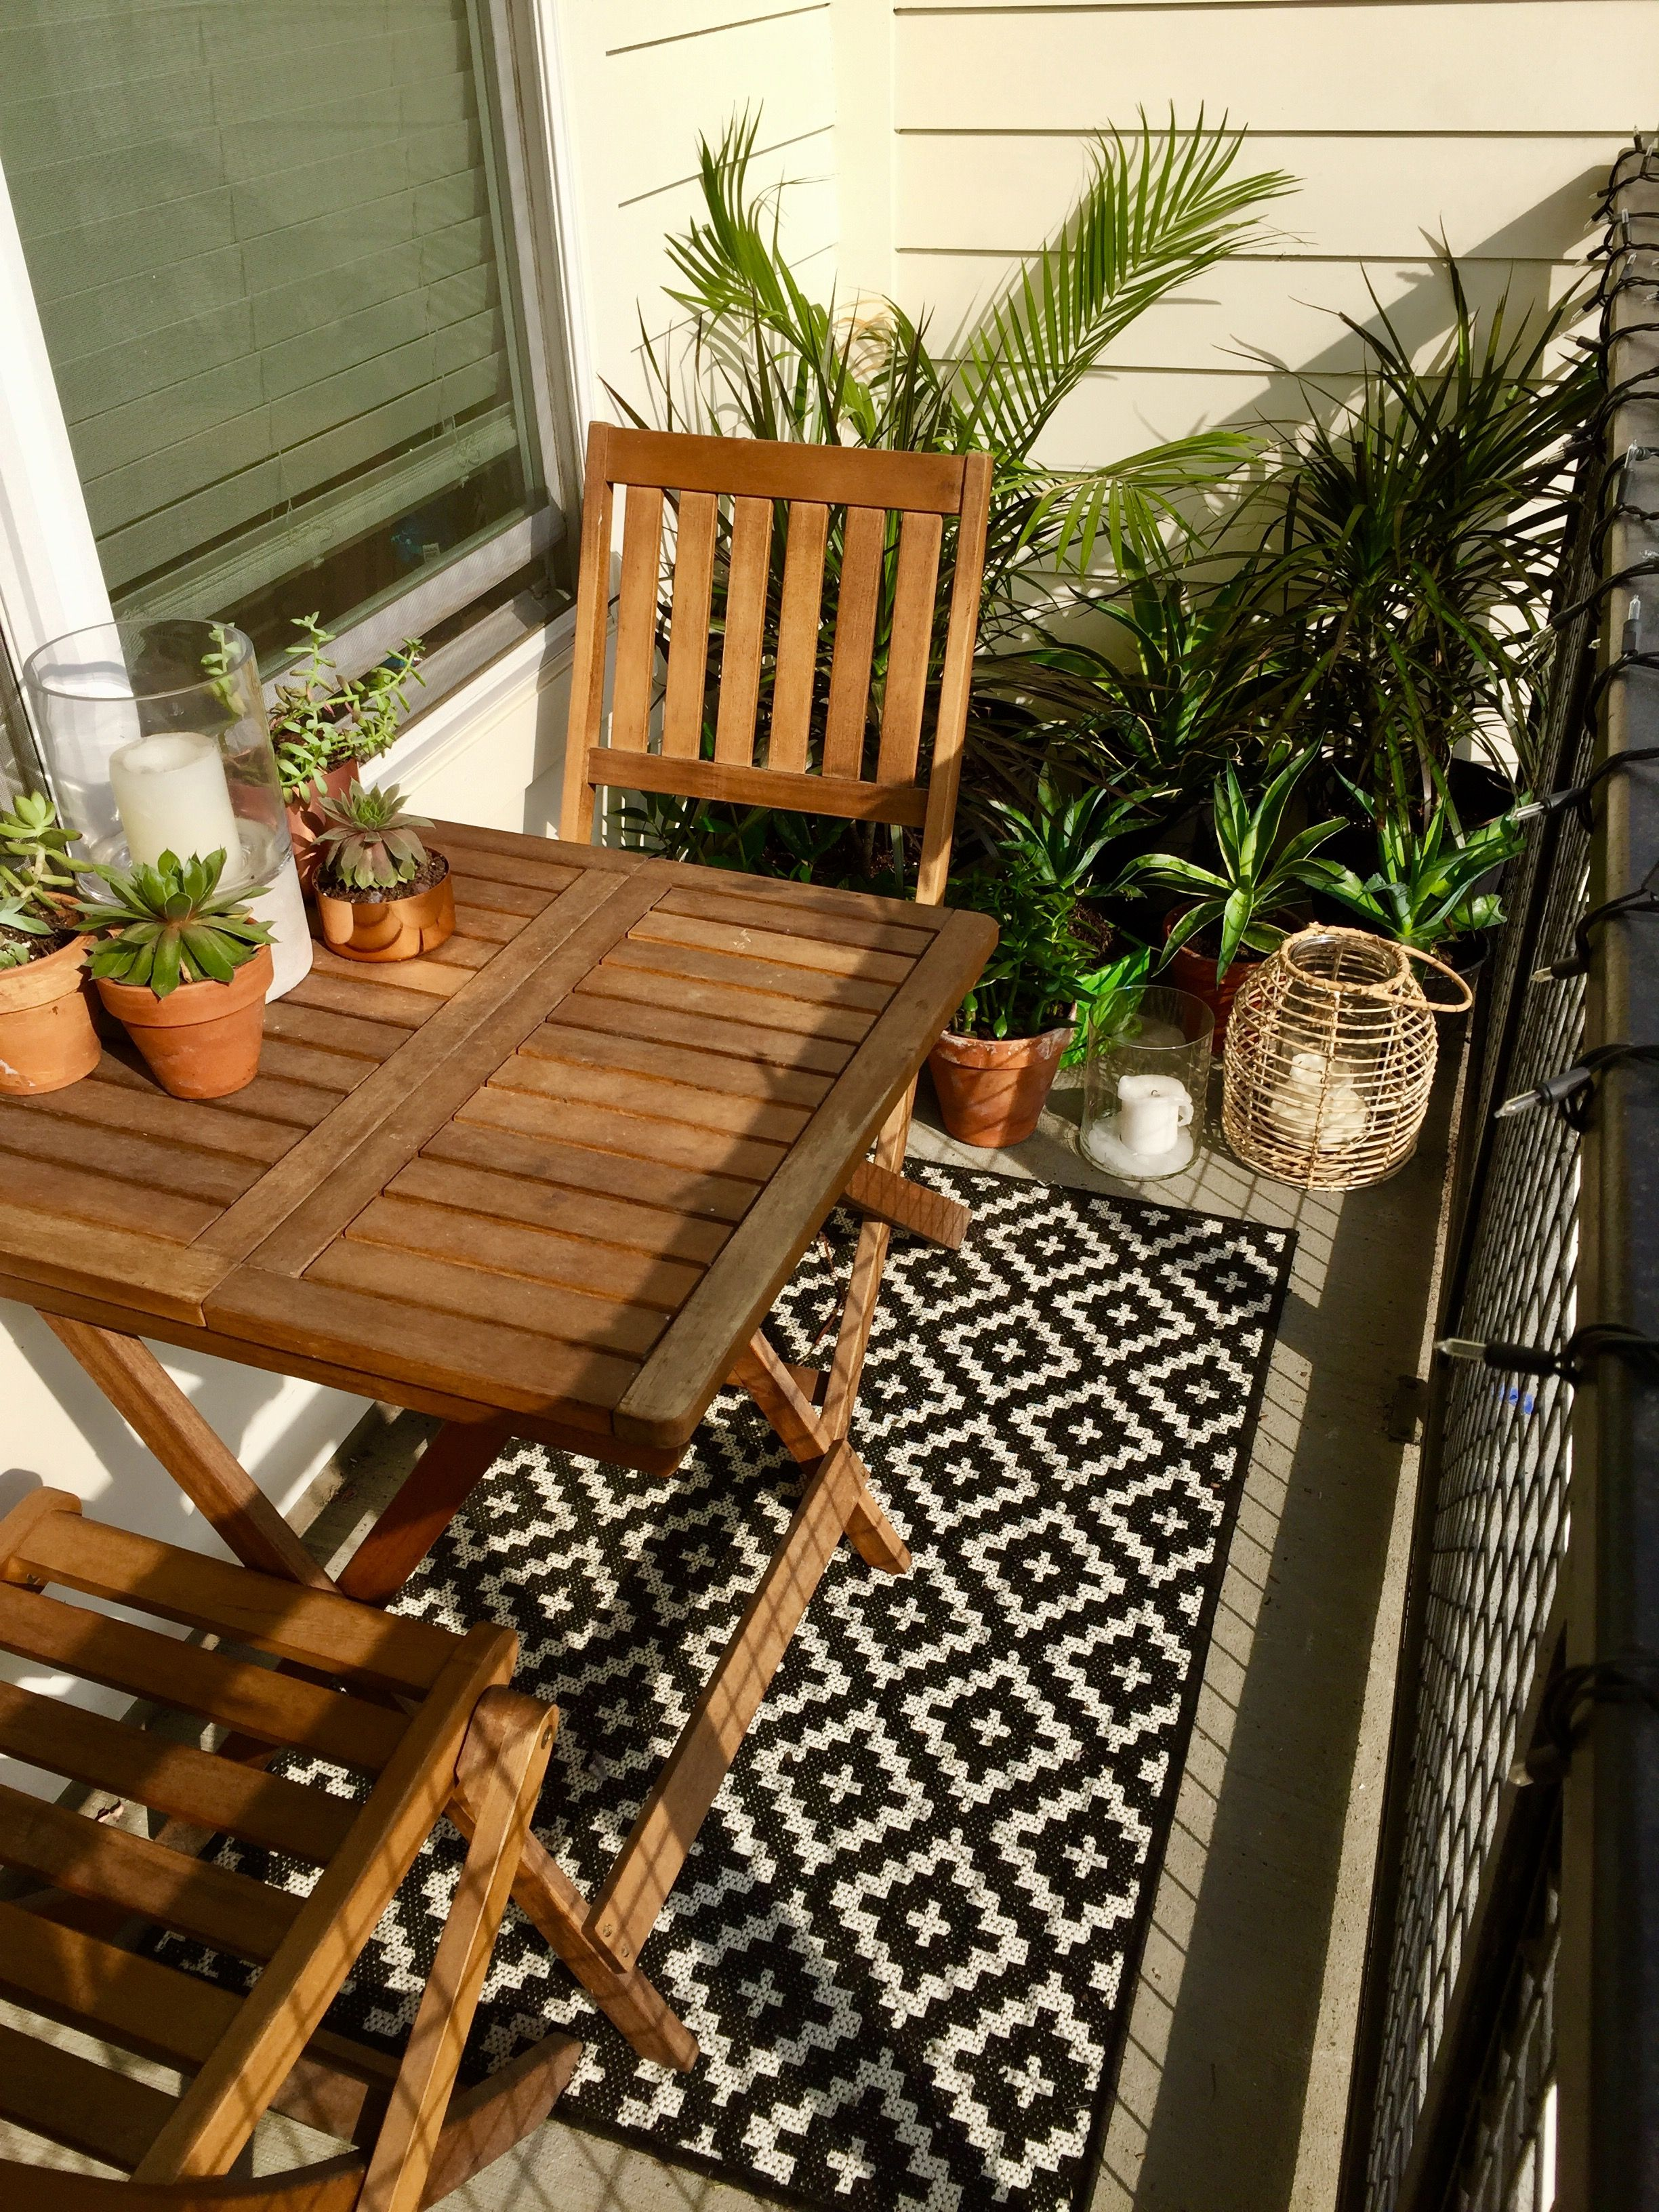 8 summer small patio ideas for you | dream home ideas